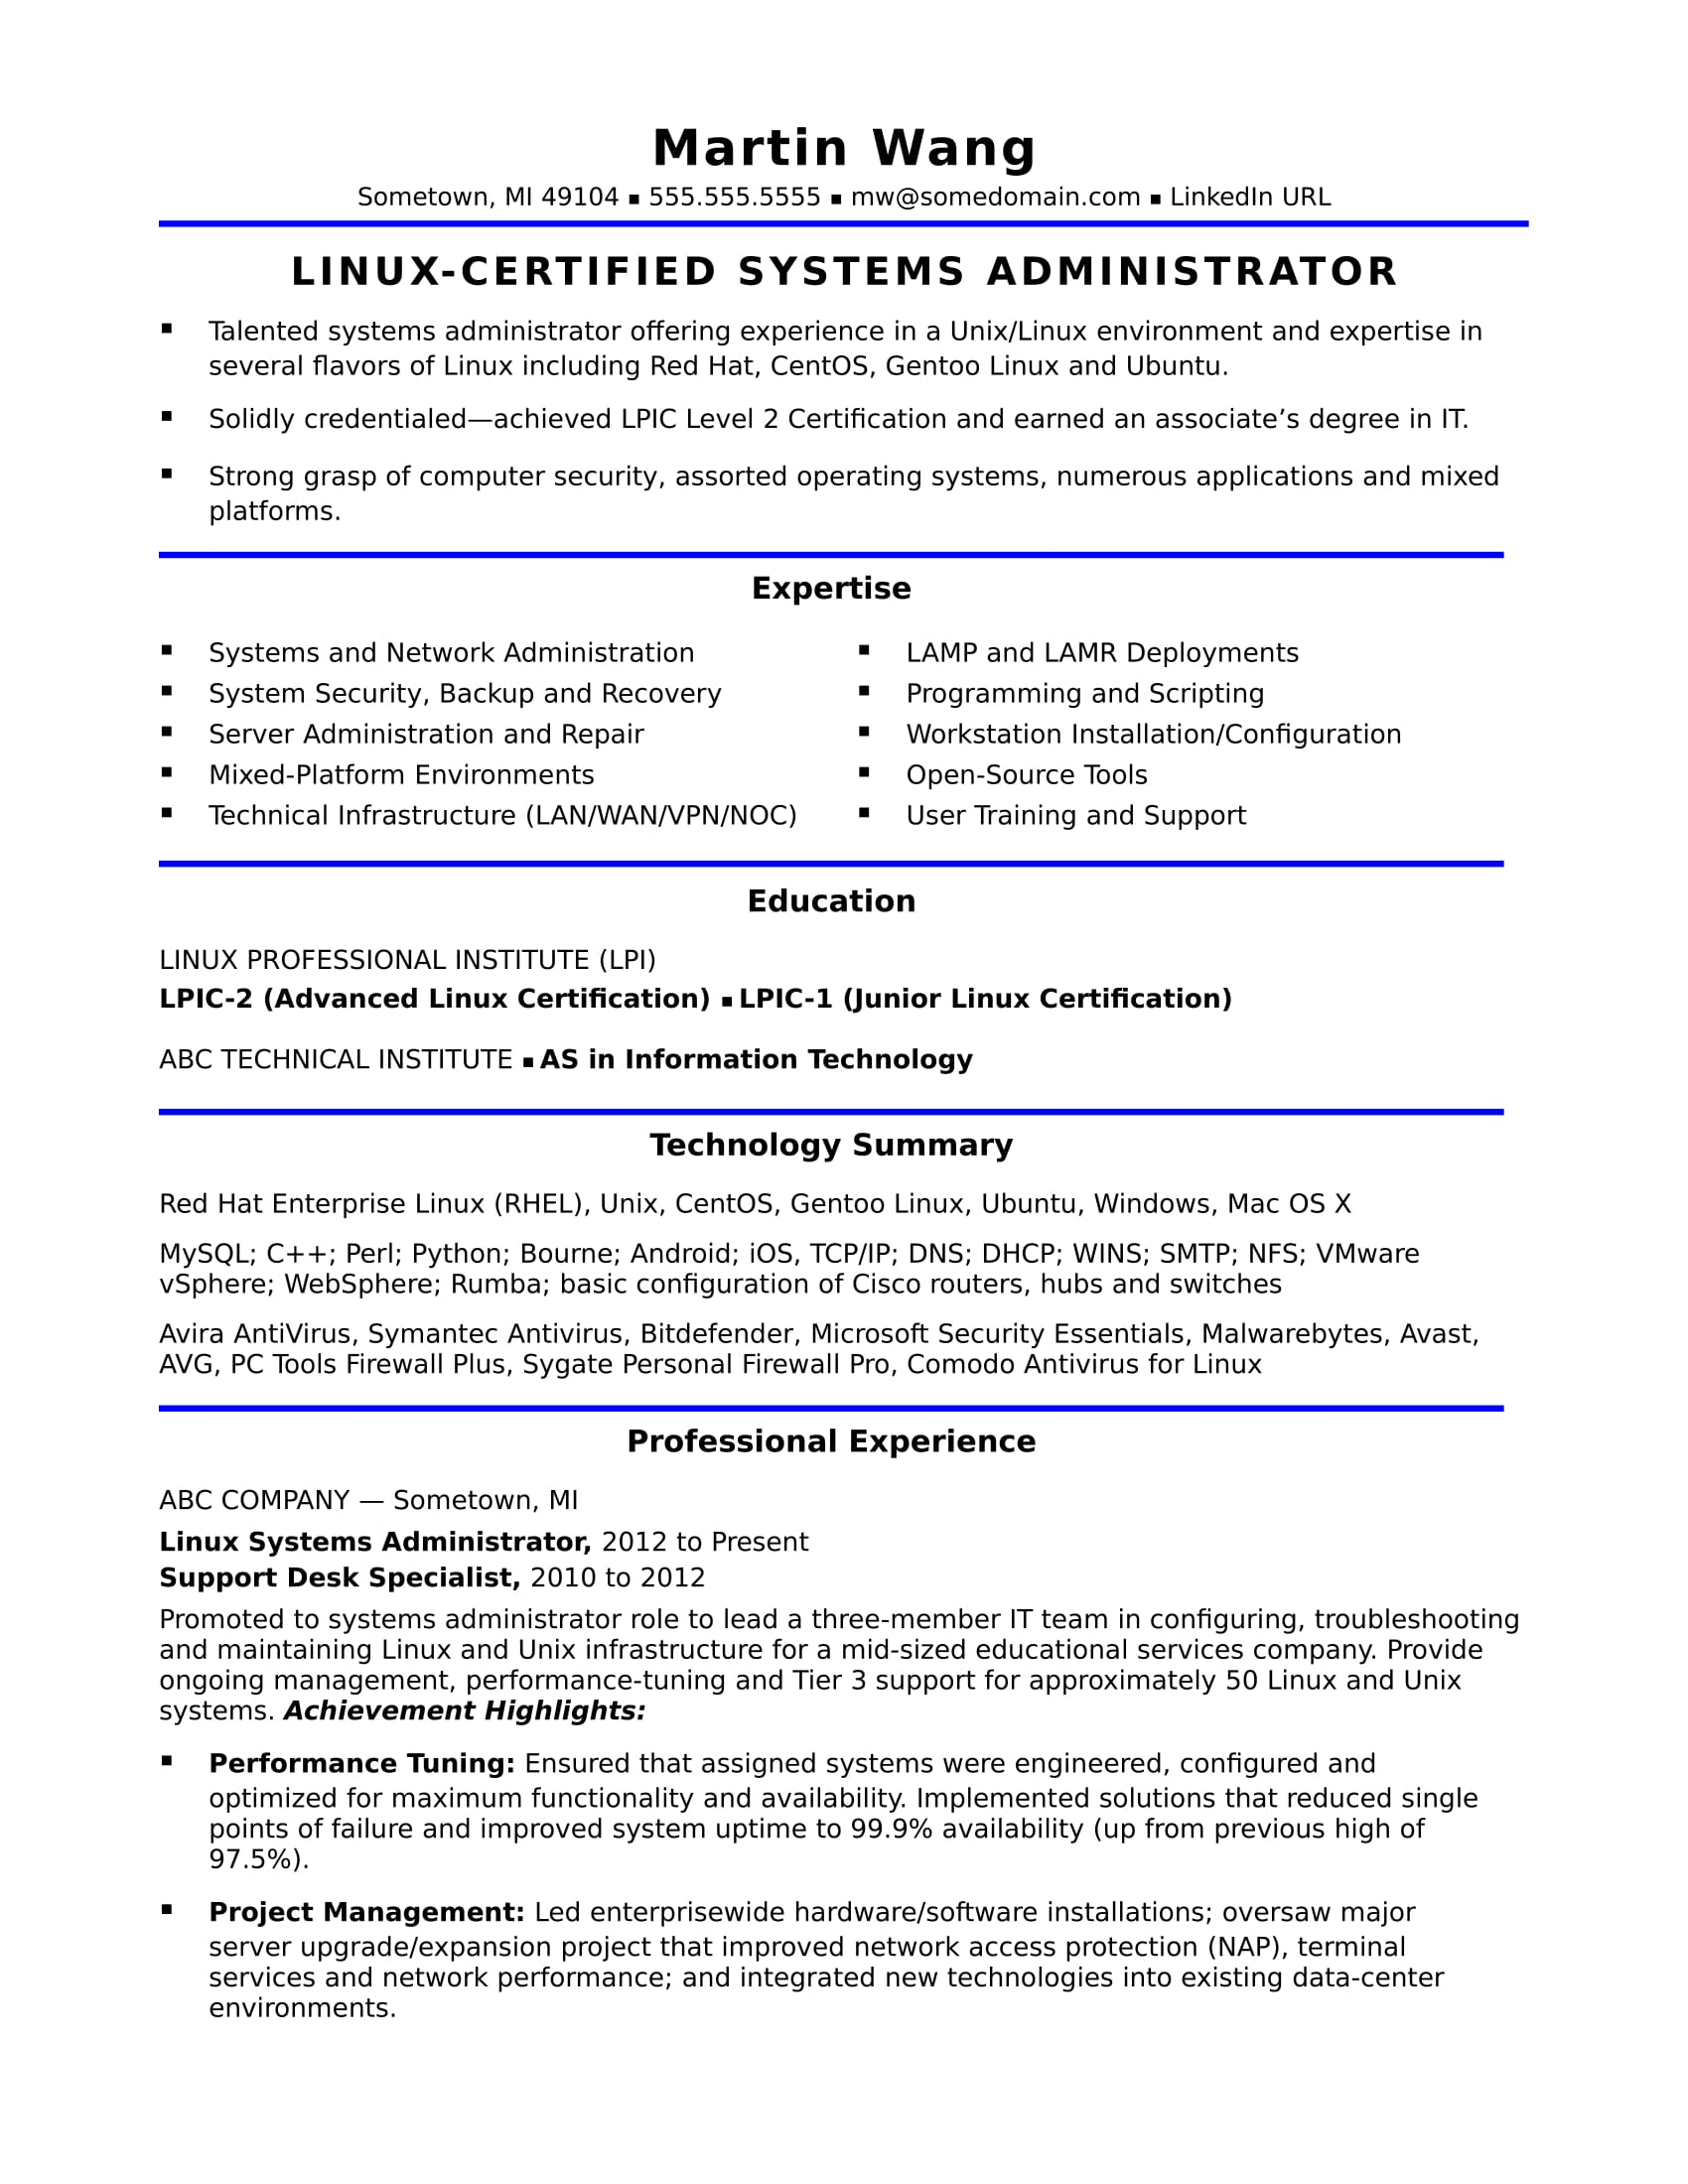 Benefits Manager Resume Sample Resume For A Midlevel Systems Administrator